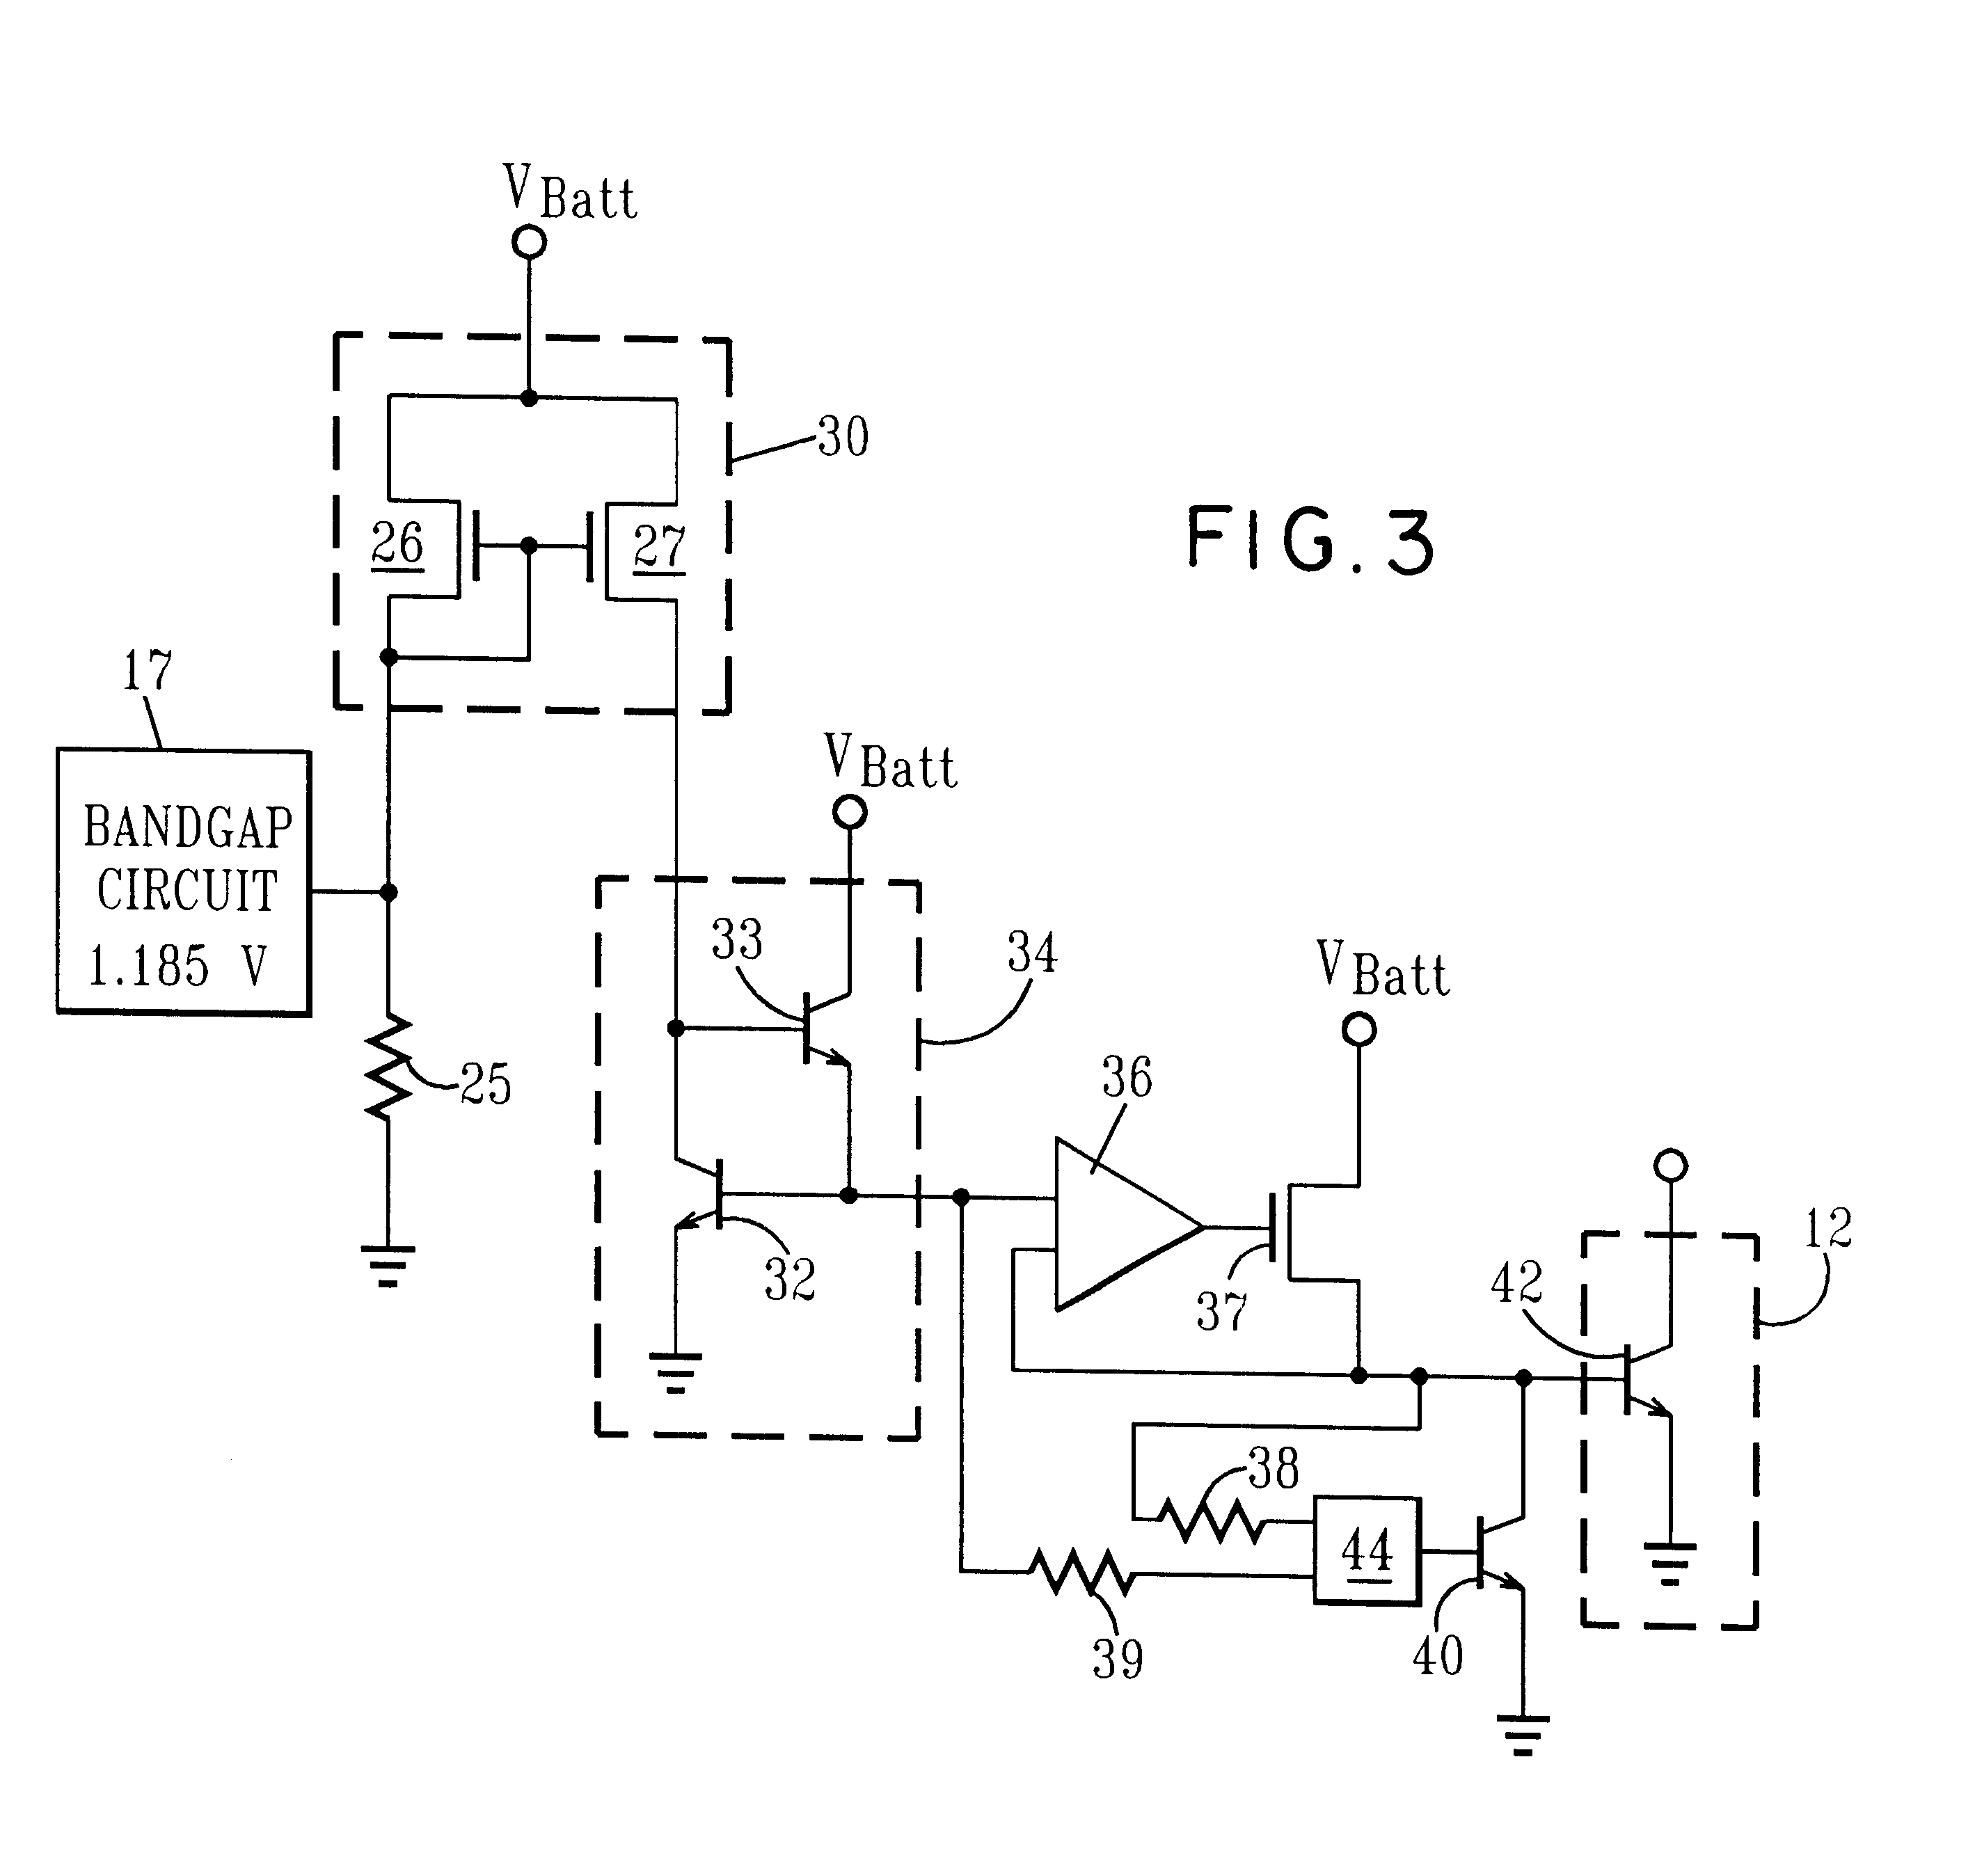 patent us6373339 - active bias network circuit for radio frequency amplifier